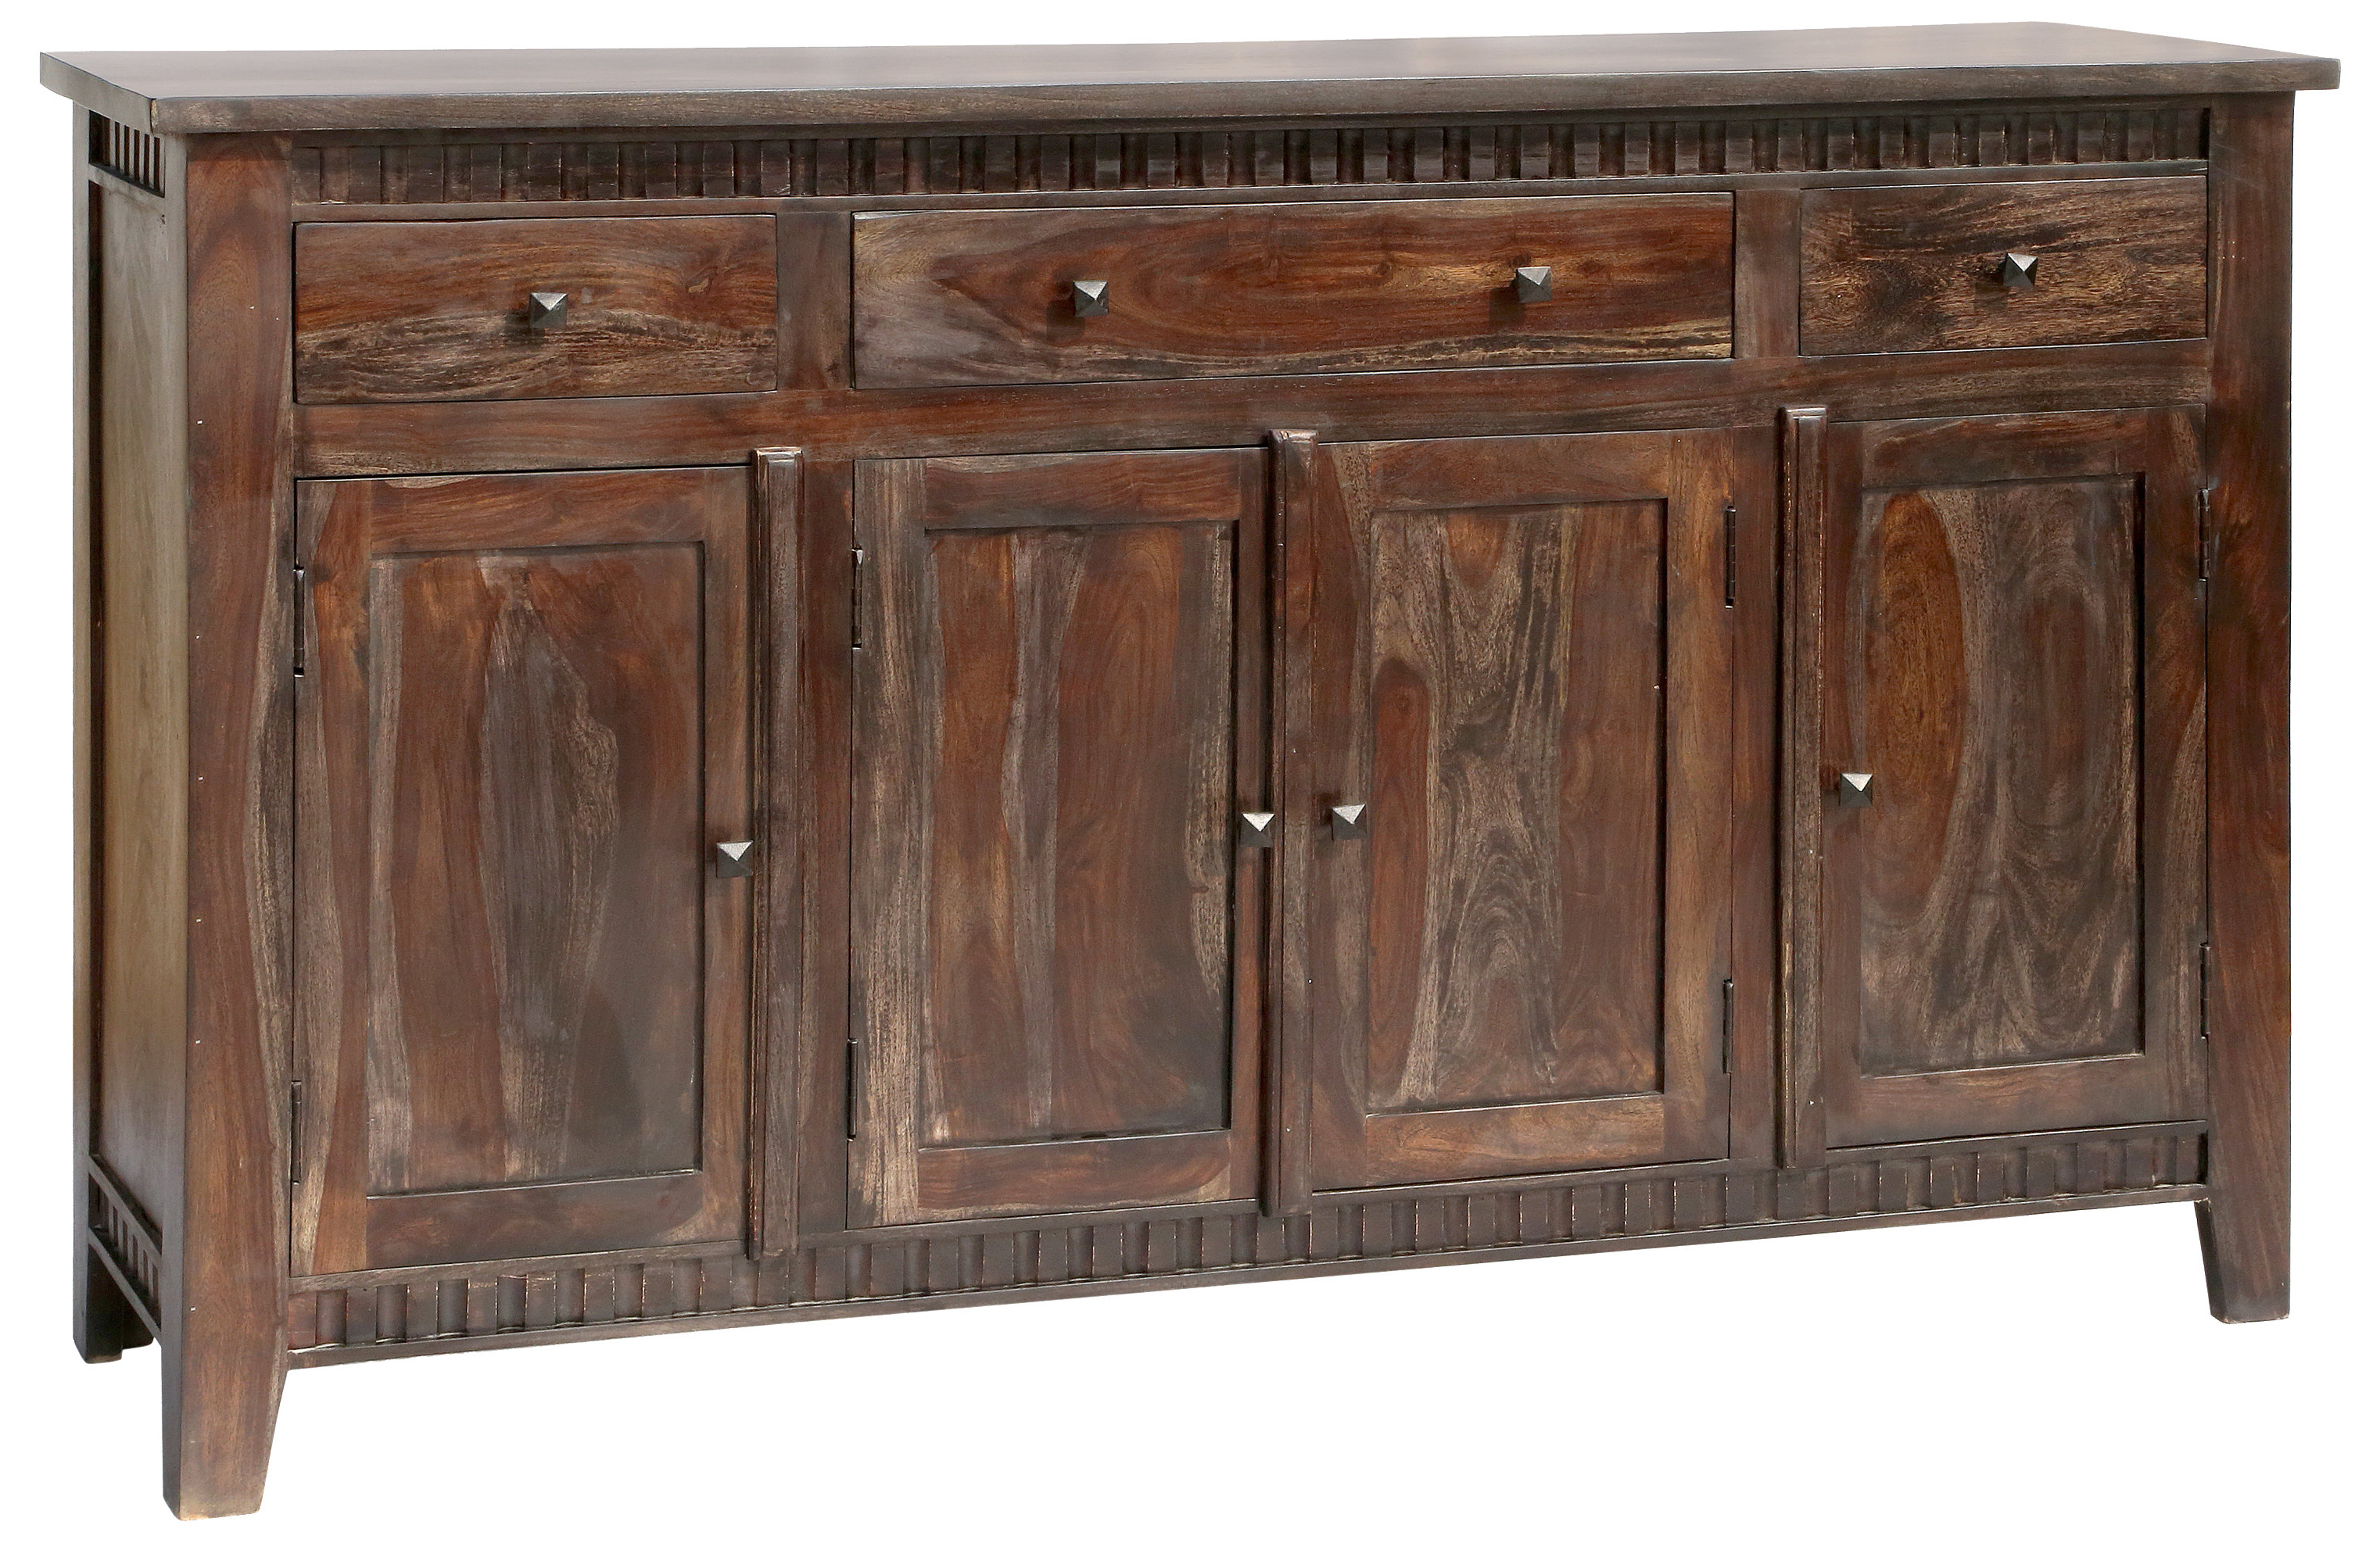 3 Drawer Sideboard | Wayfair With Regard To Drummond 4 Drawer Sideboards (Gallery 10 of 20)